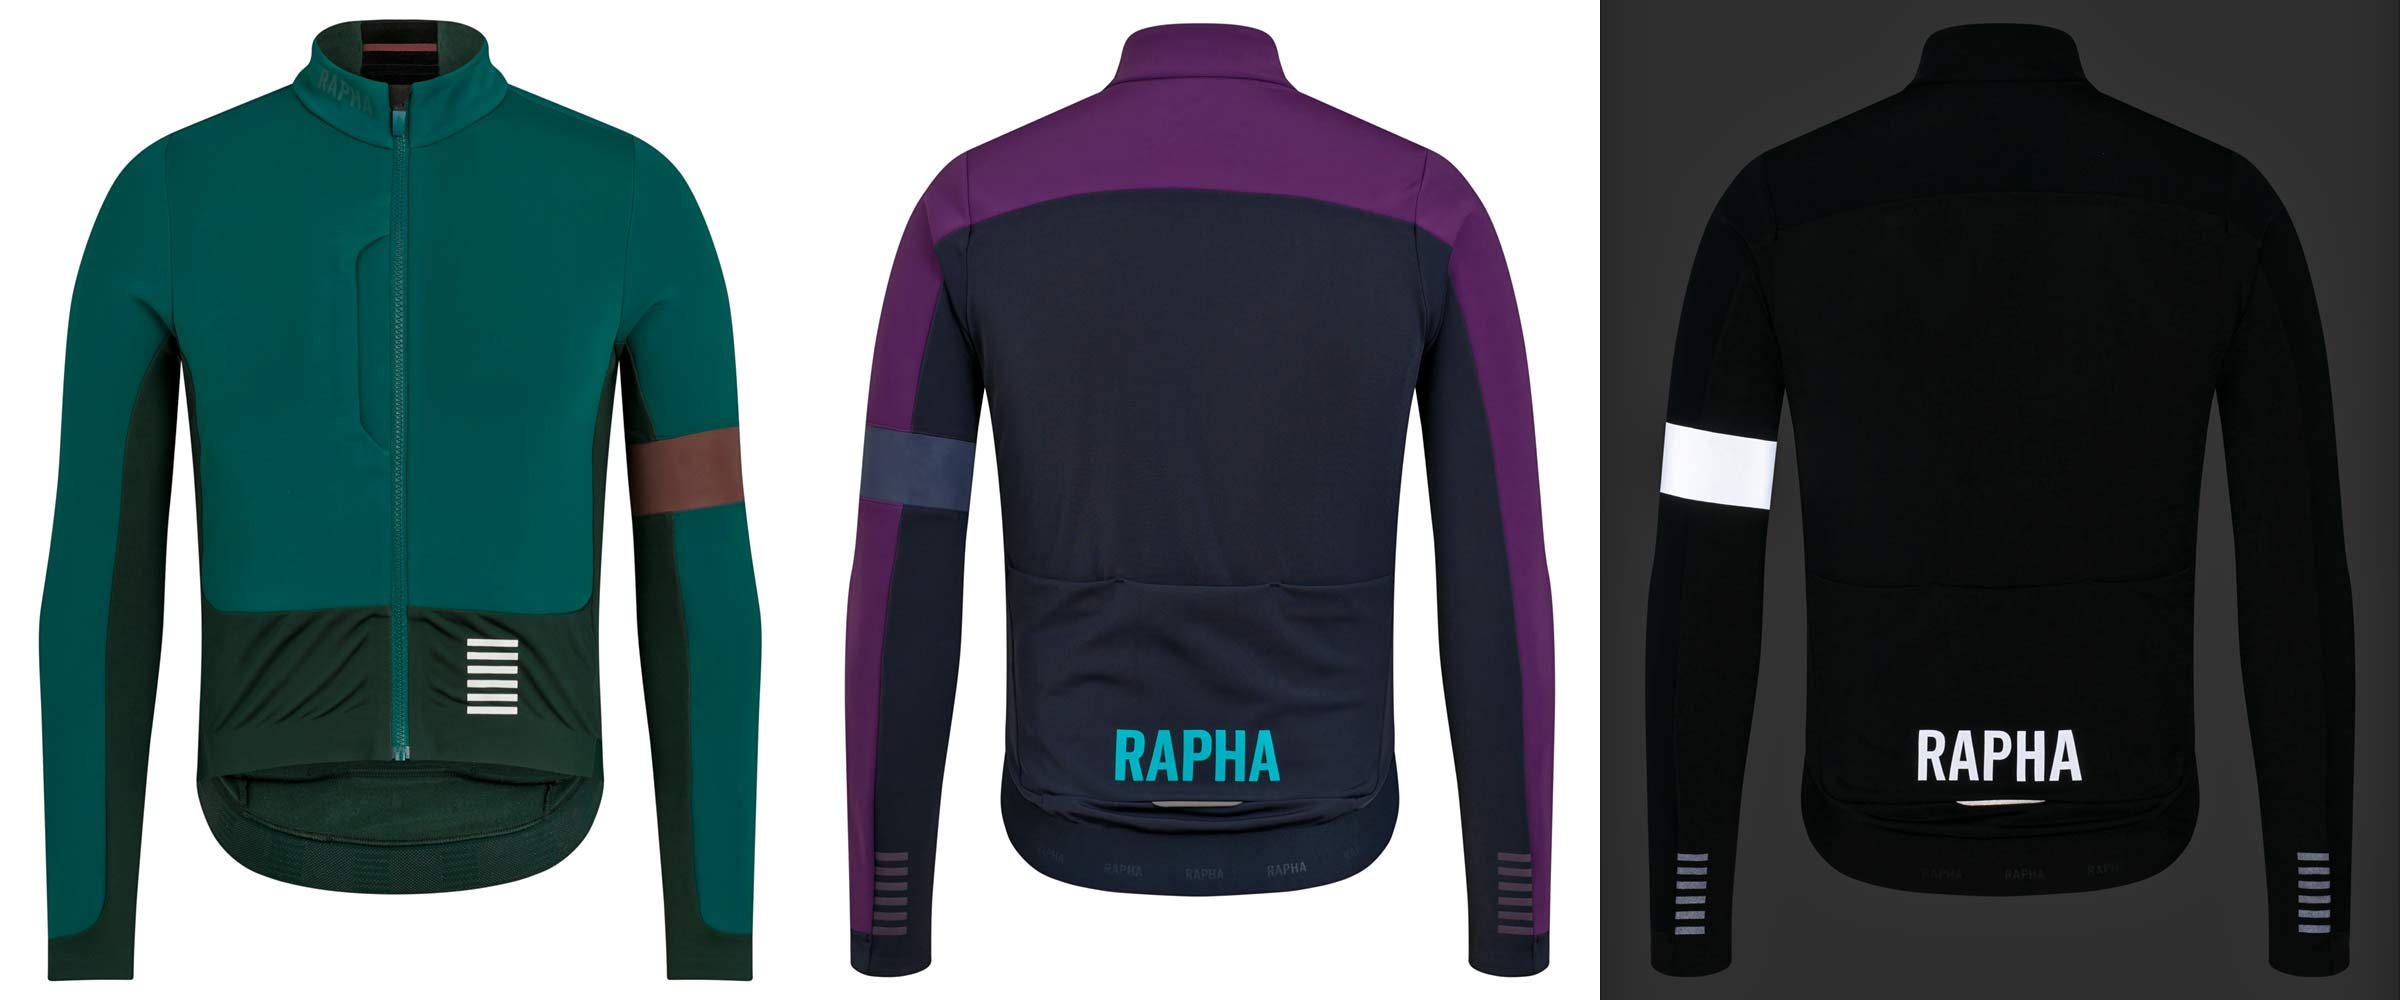 Rapha Pro Team Winter road riding racing training collection, Pro Team Winter Jacket,